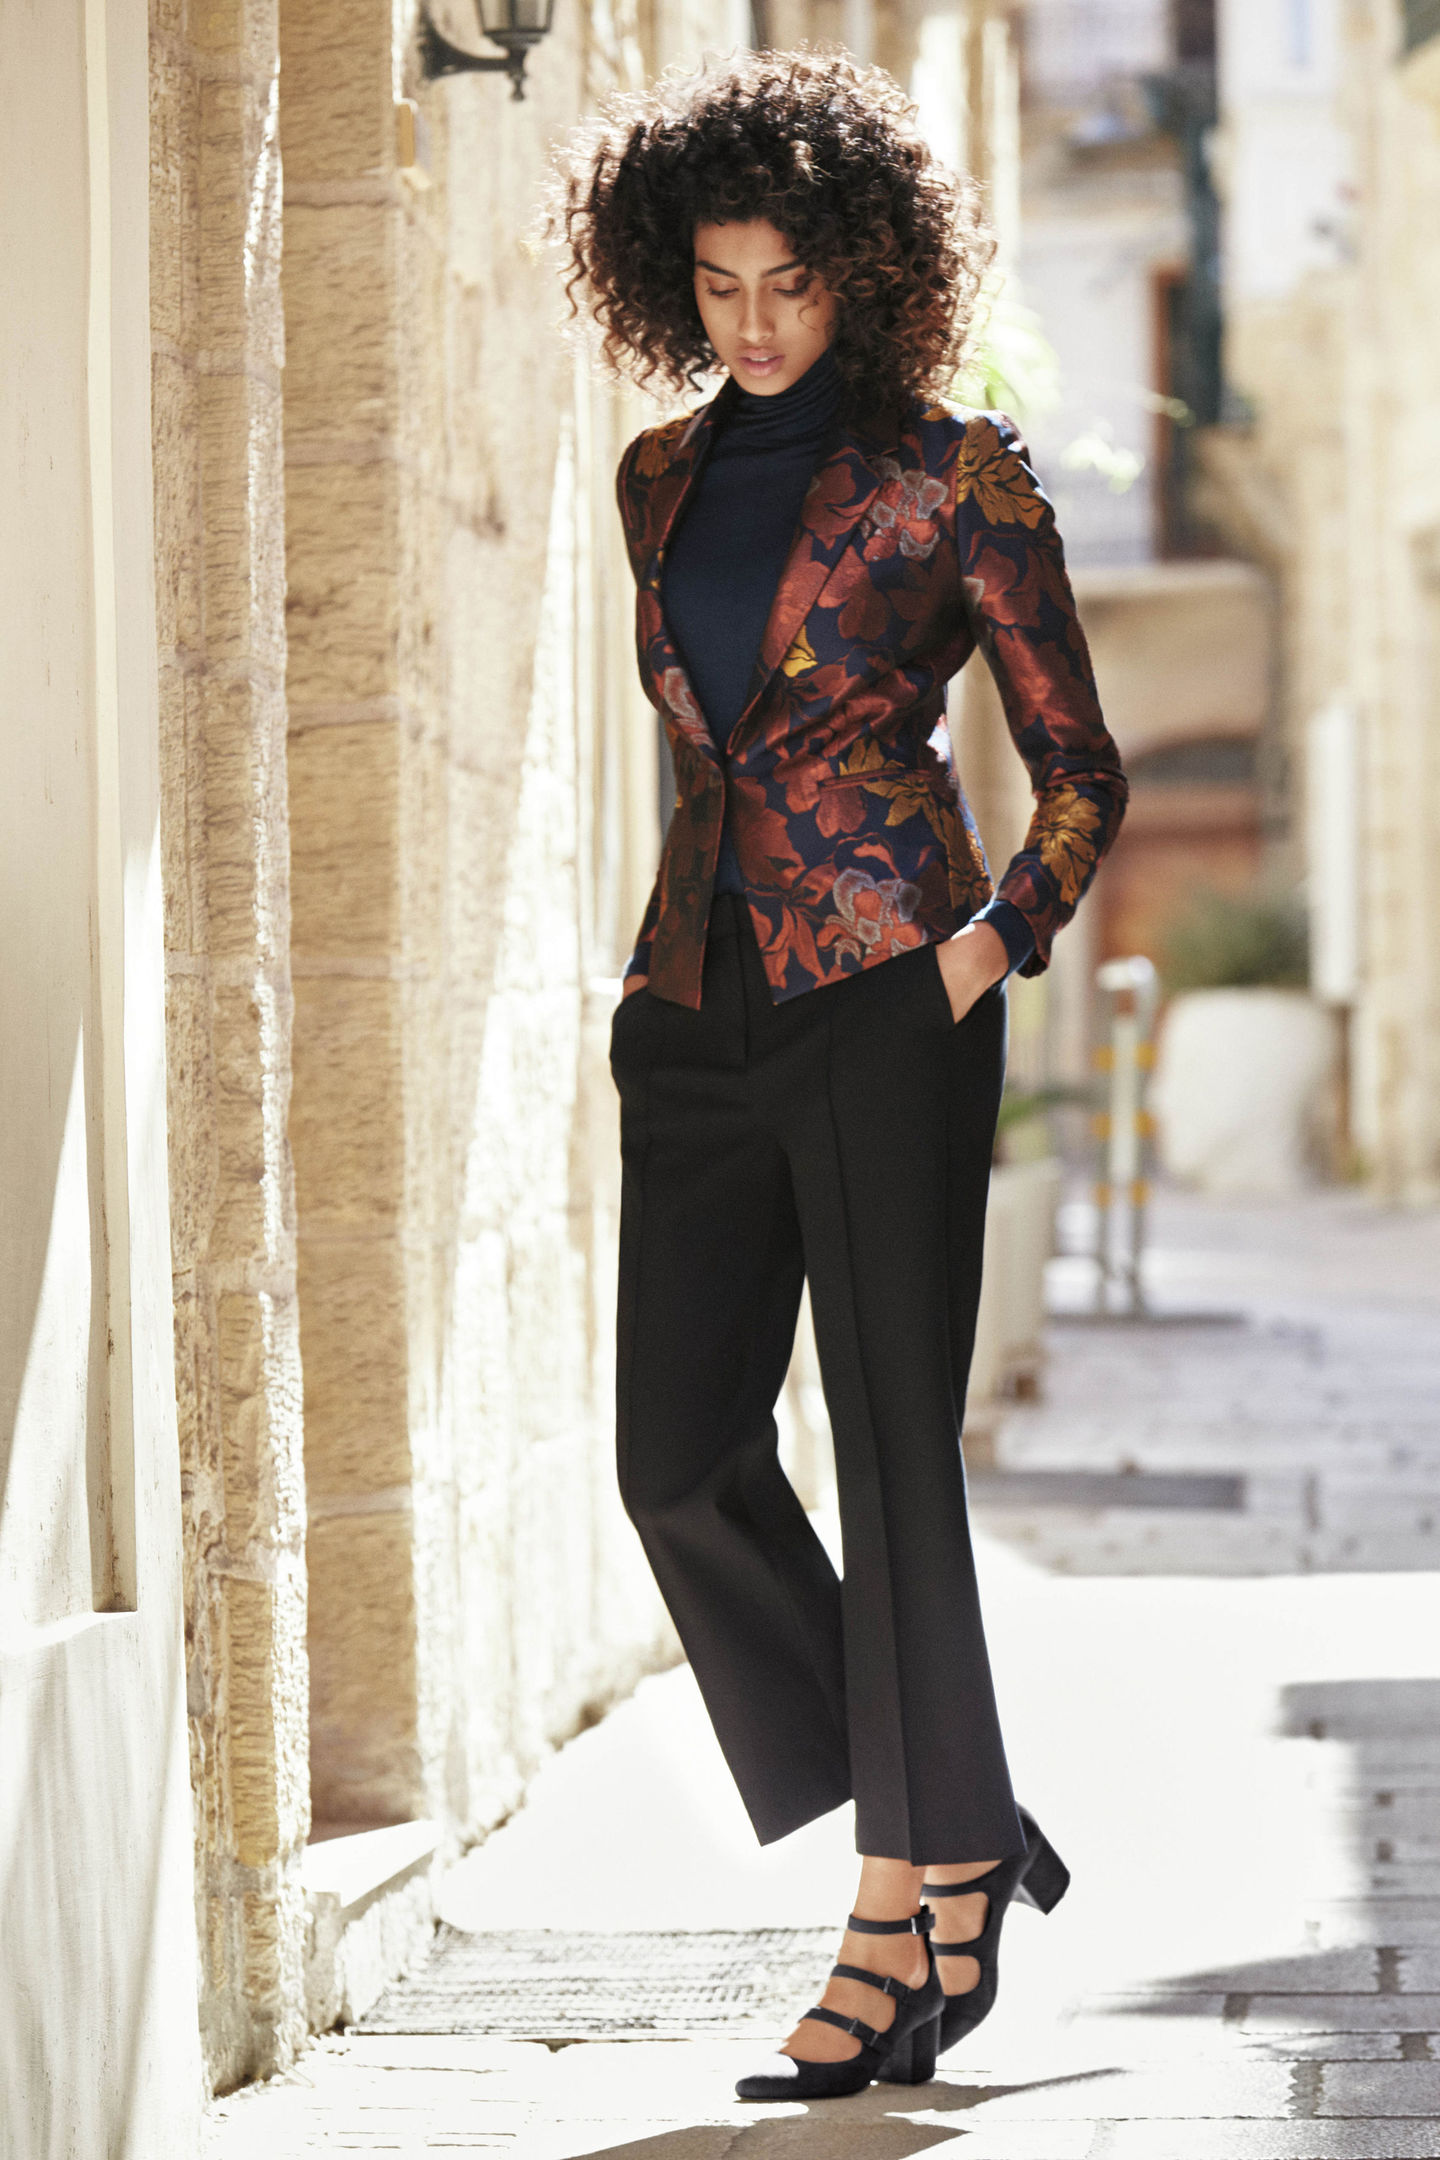 Next Floral Metallic Jacquard Jacket, Long Sleeve Wool Blend Roll Neck, Black Crepe Slouch Trousers and Strappy Court Shoes, available from next.co.uk.